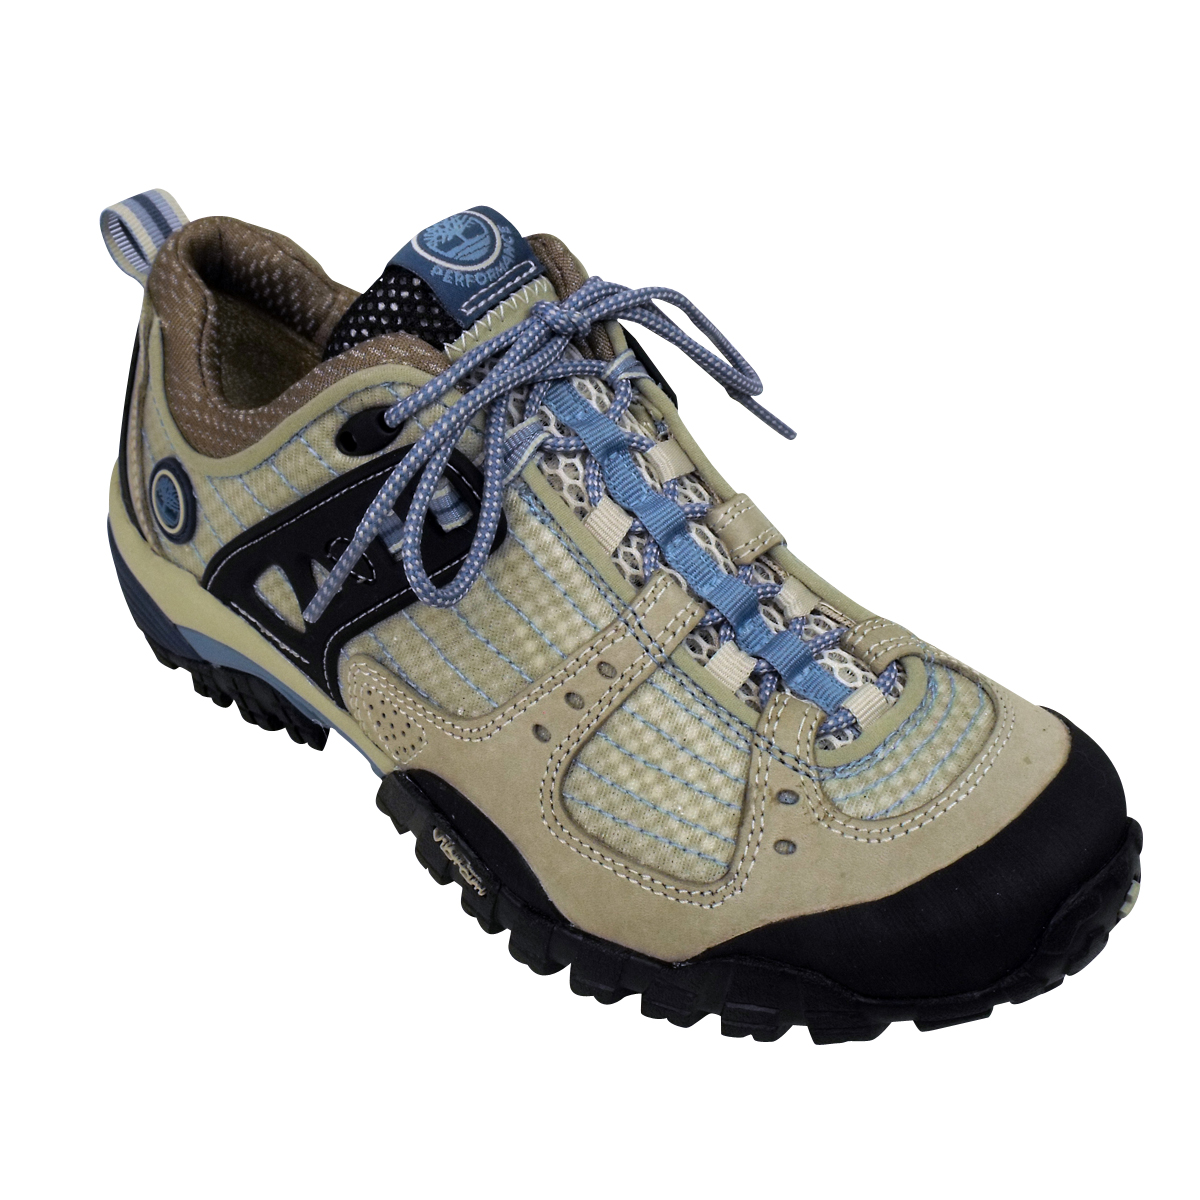 Elegant Outdoor Walking Boots Womens Gtx Women39s Walking Boots